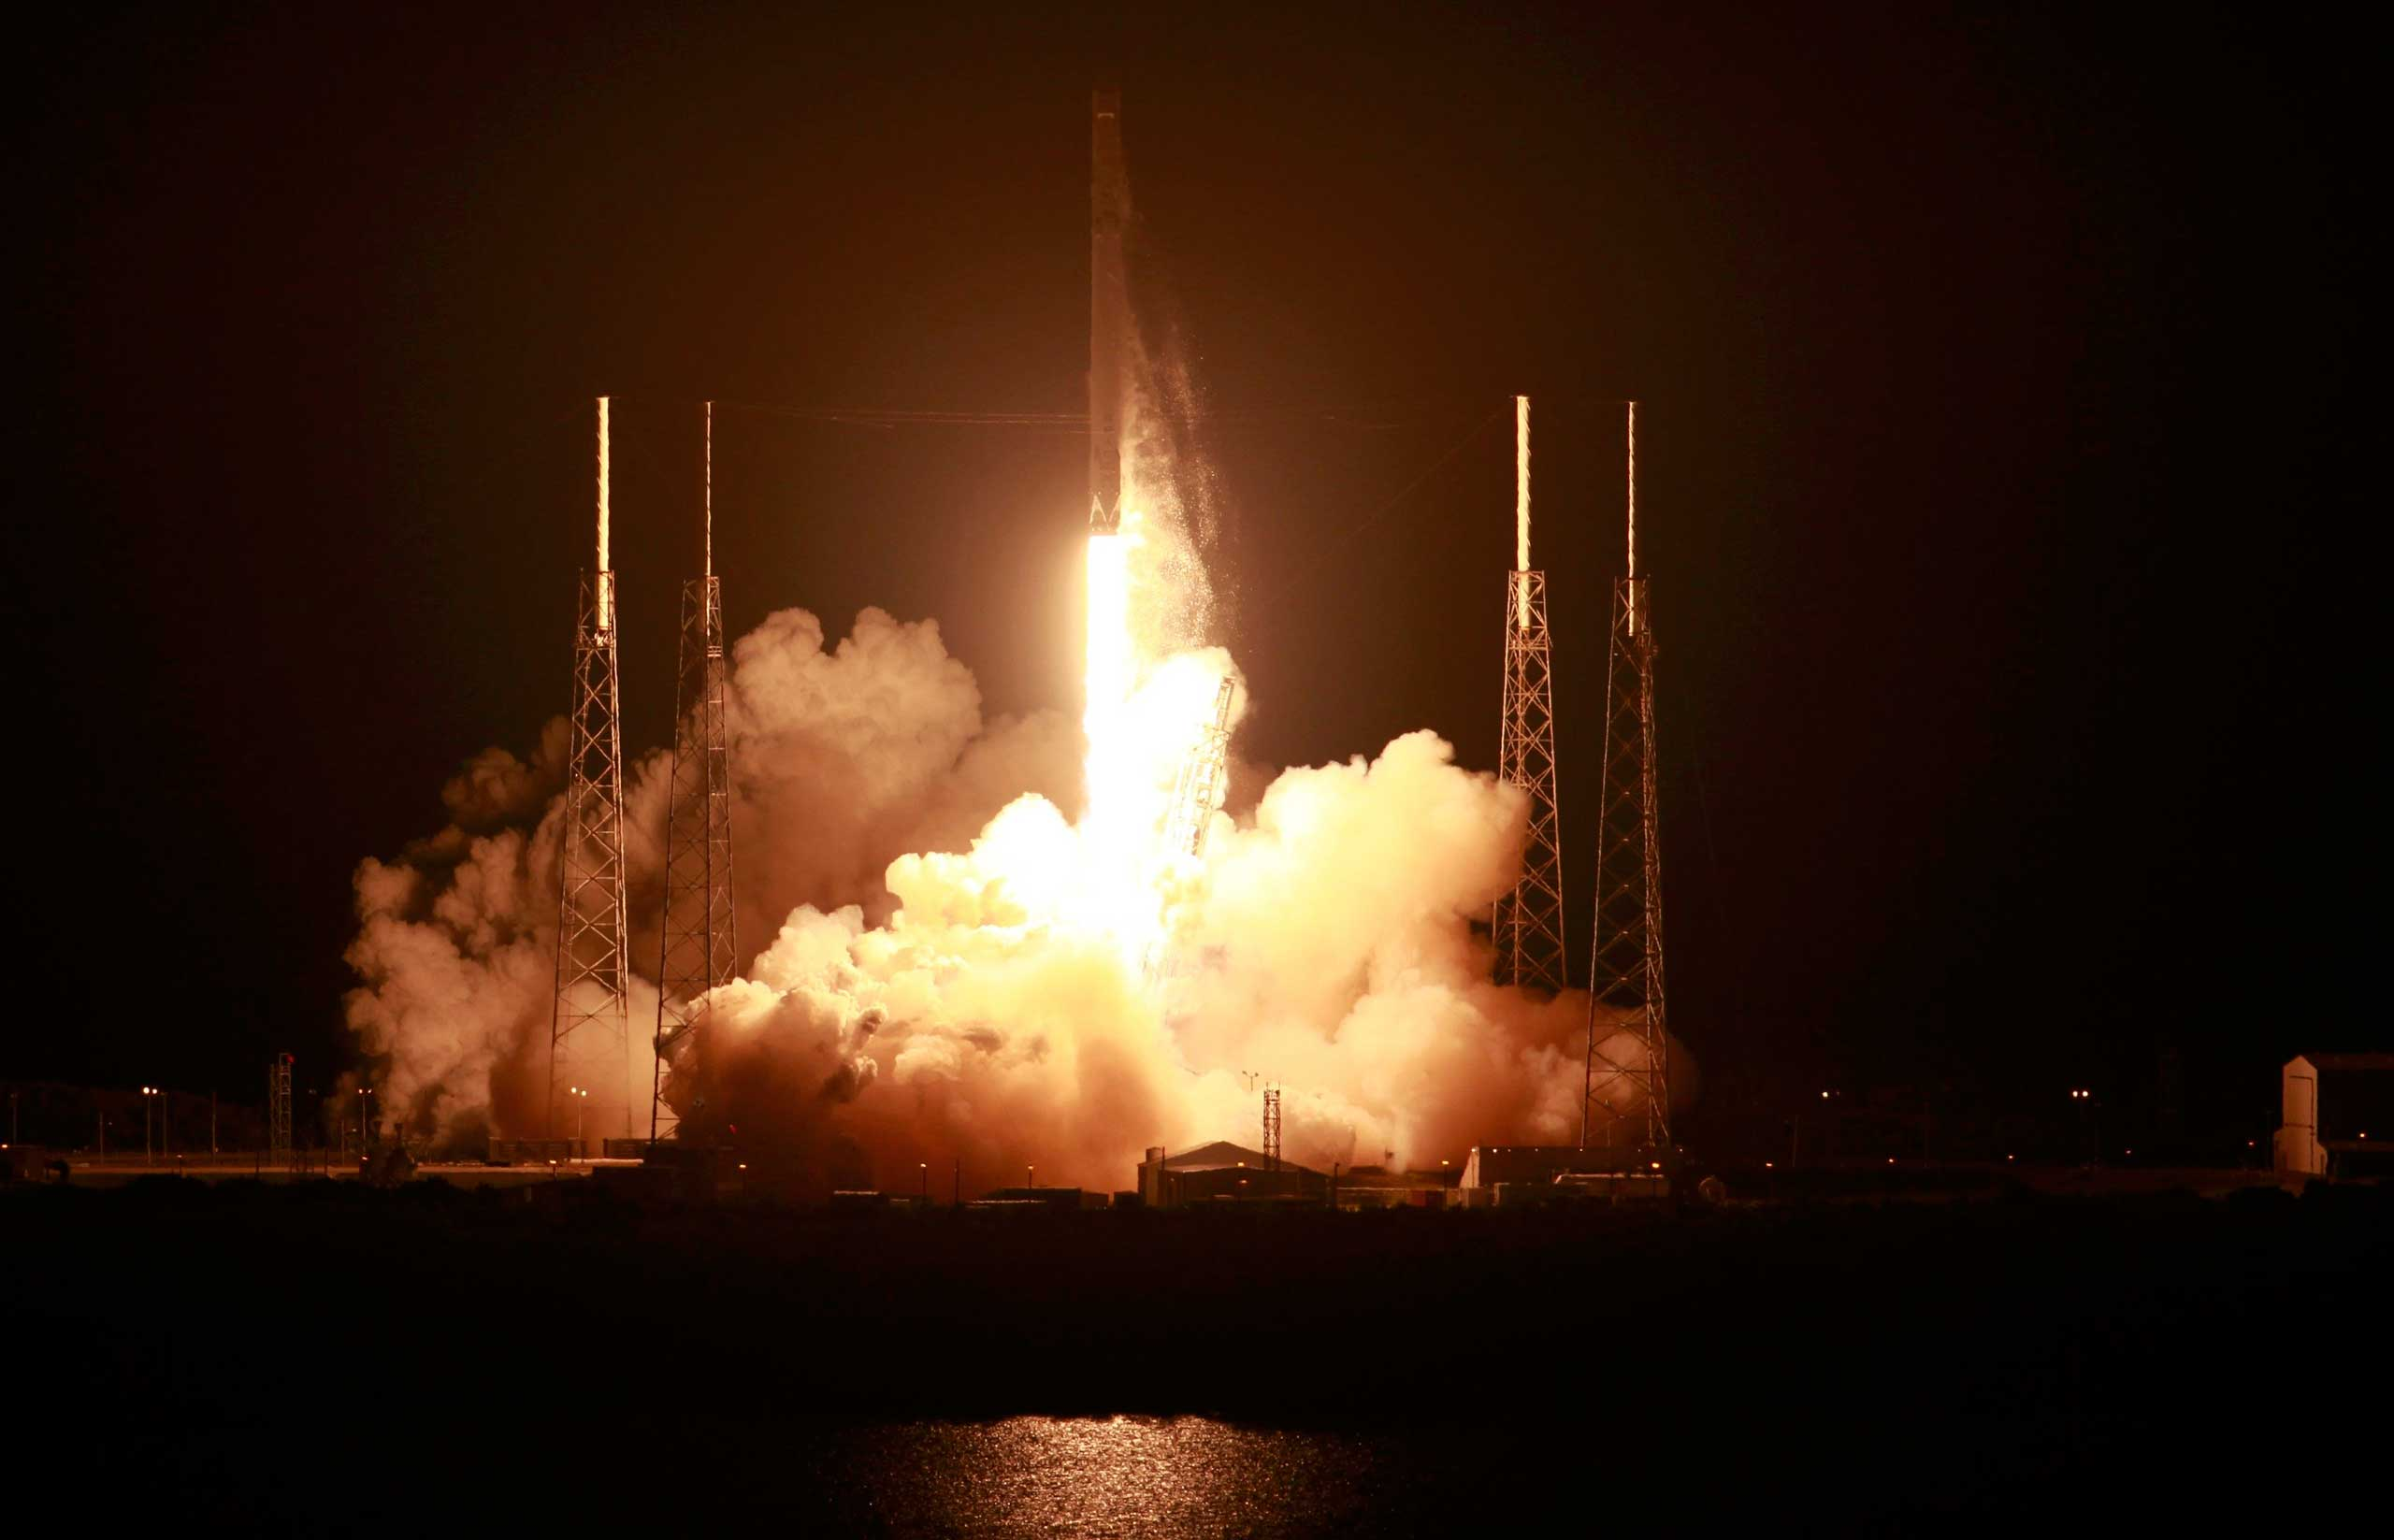 The unmanned Falcon 9 rocket launched by SpaceX on a cargo resupply service mission to the International Space Station lifts off from the Cape Canaveral Air Force Station in Cape Canaveral, Fla. on Jan. 10, 2015.